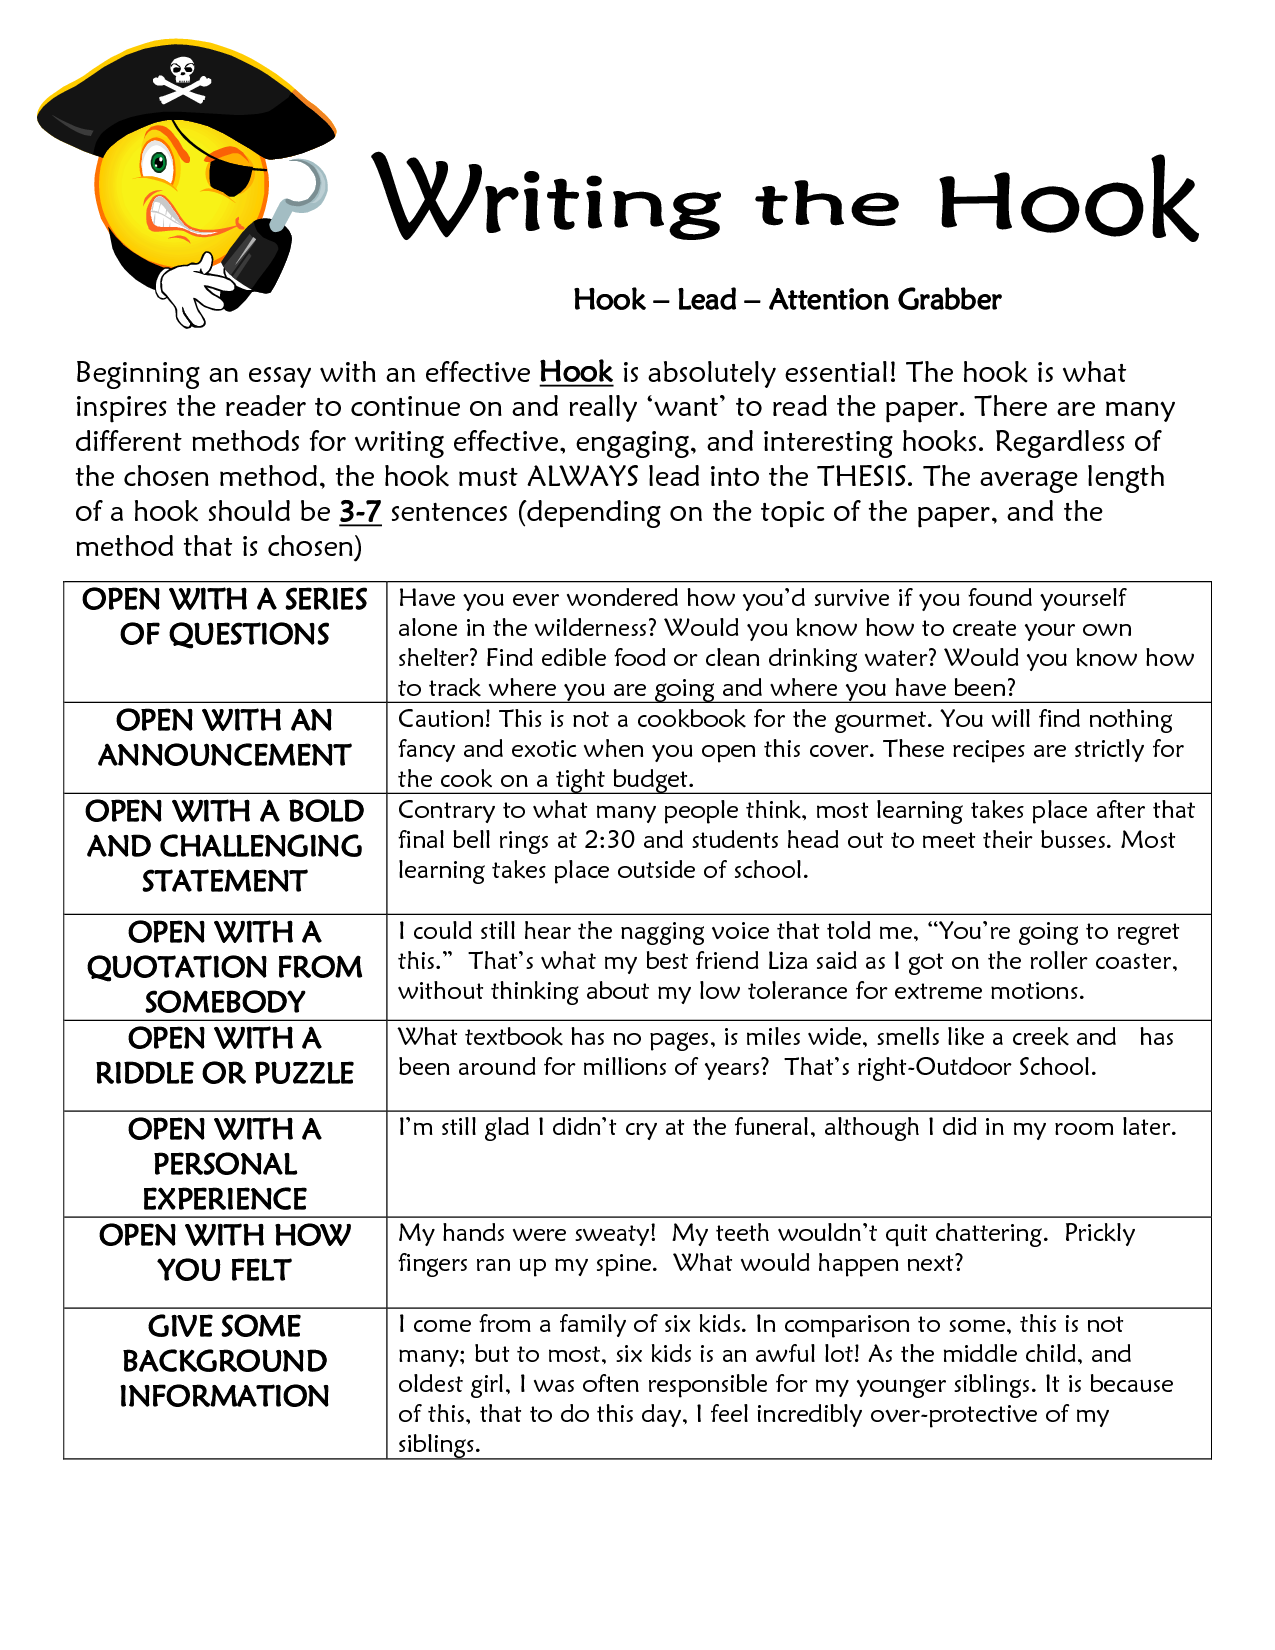 different types of essay hooks gems author s word and author s palette by jennifer la on prezi essay hooks